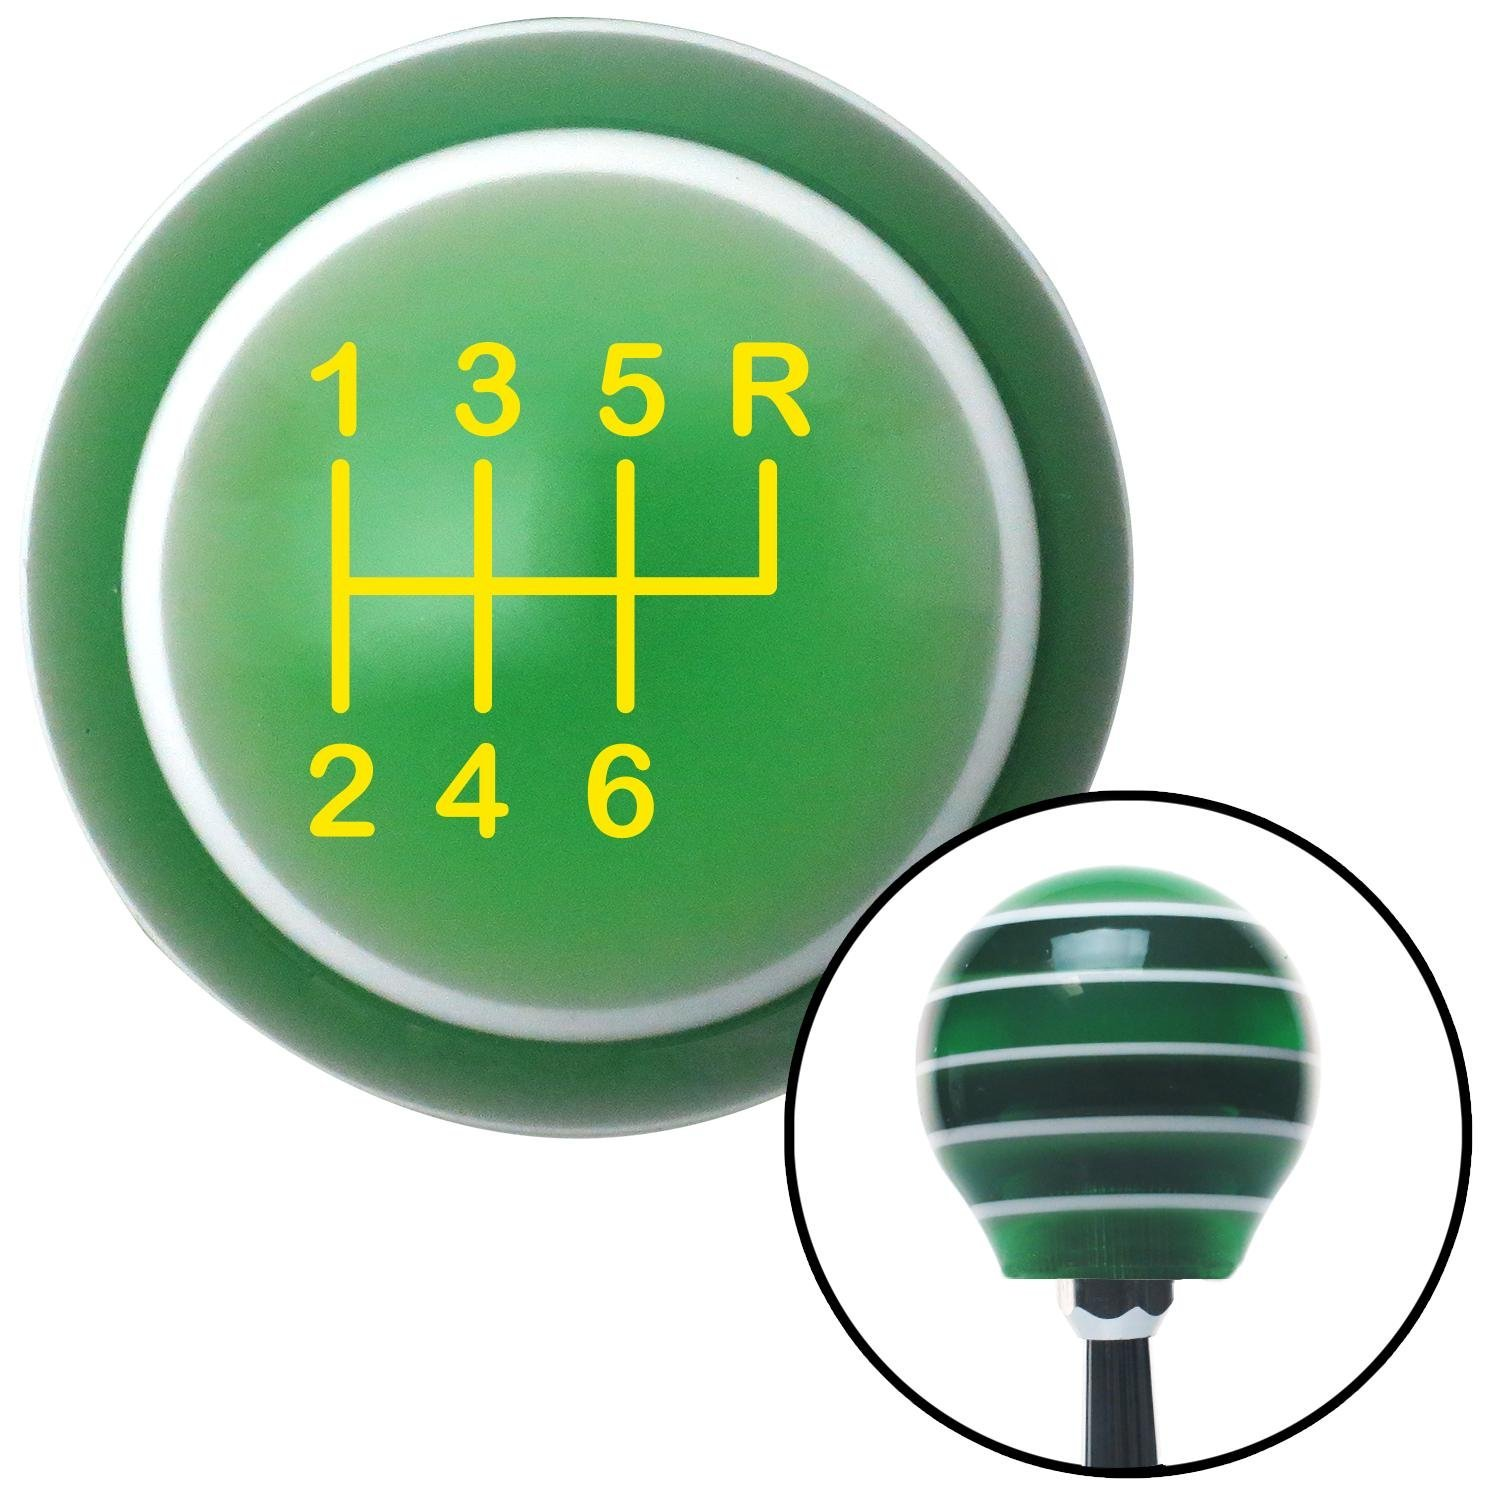 Yellow Shift Pattern 26n American Shifter 127002 Green Stripe Shift Knob with M16 x 1.5 Insert